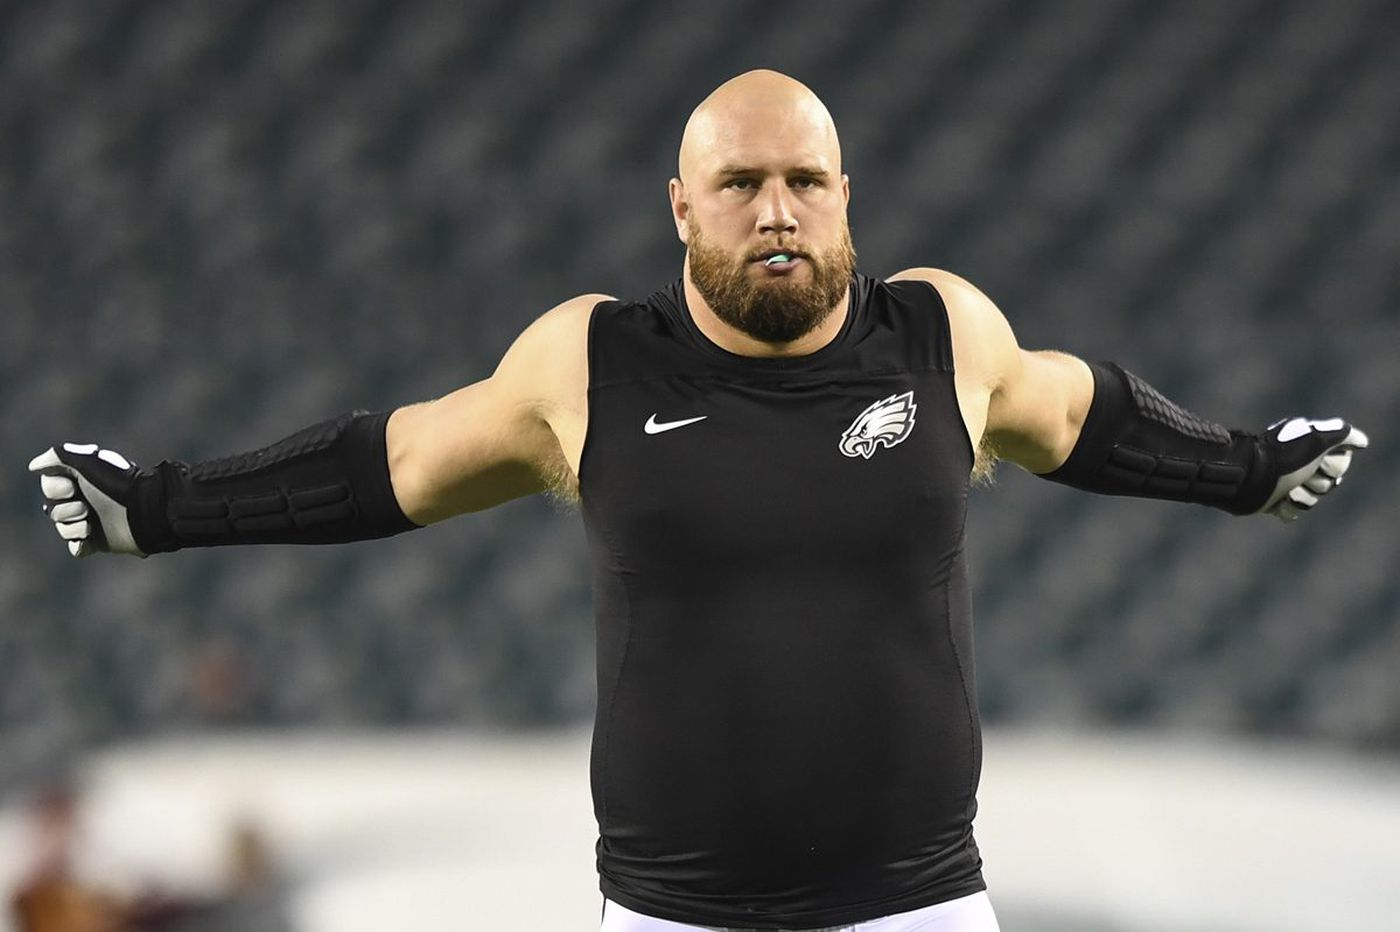 Eagles' Lane Johnson rips the Patriots, Bill Belichick and Chip Kelly